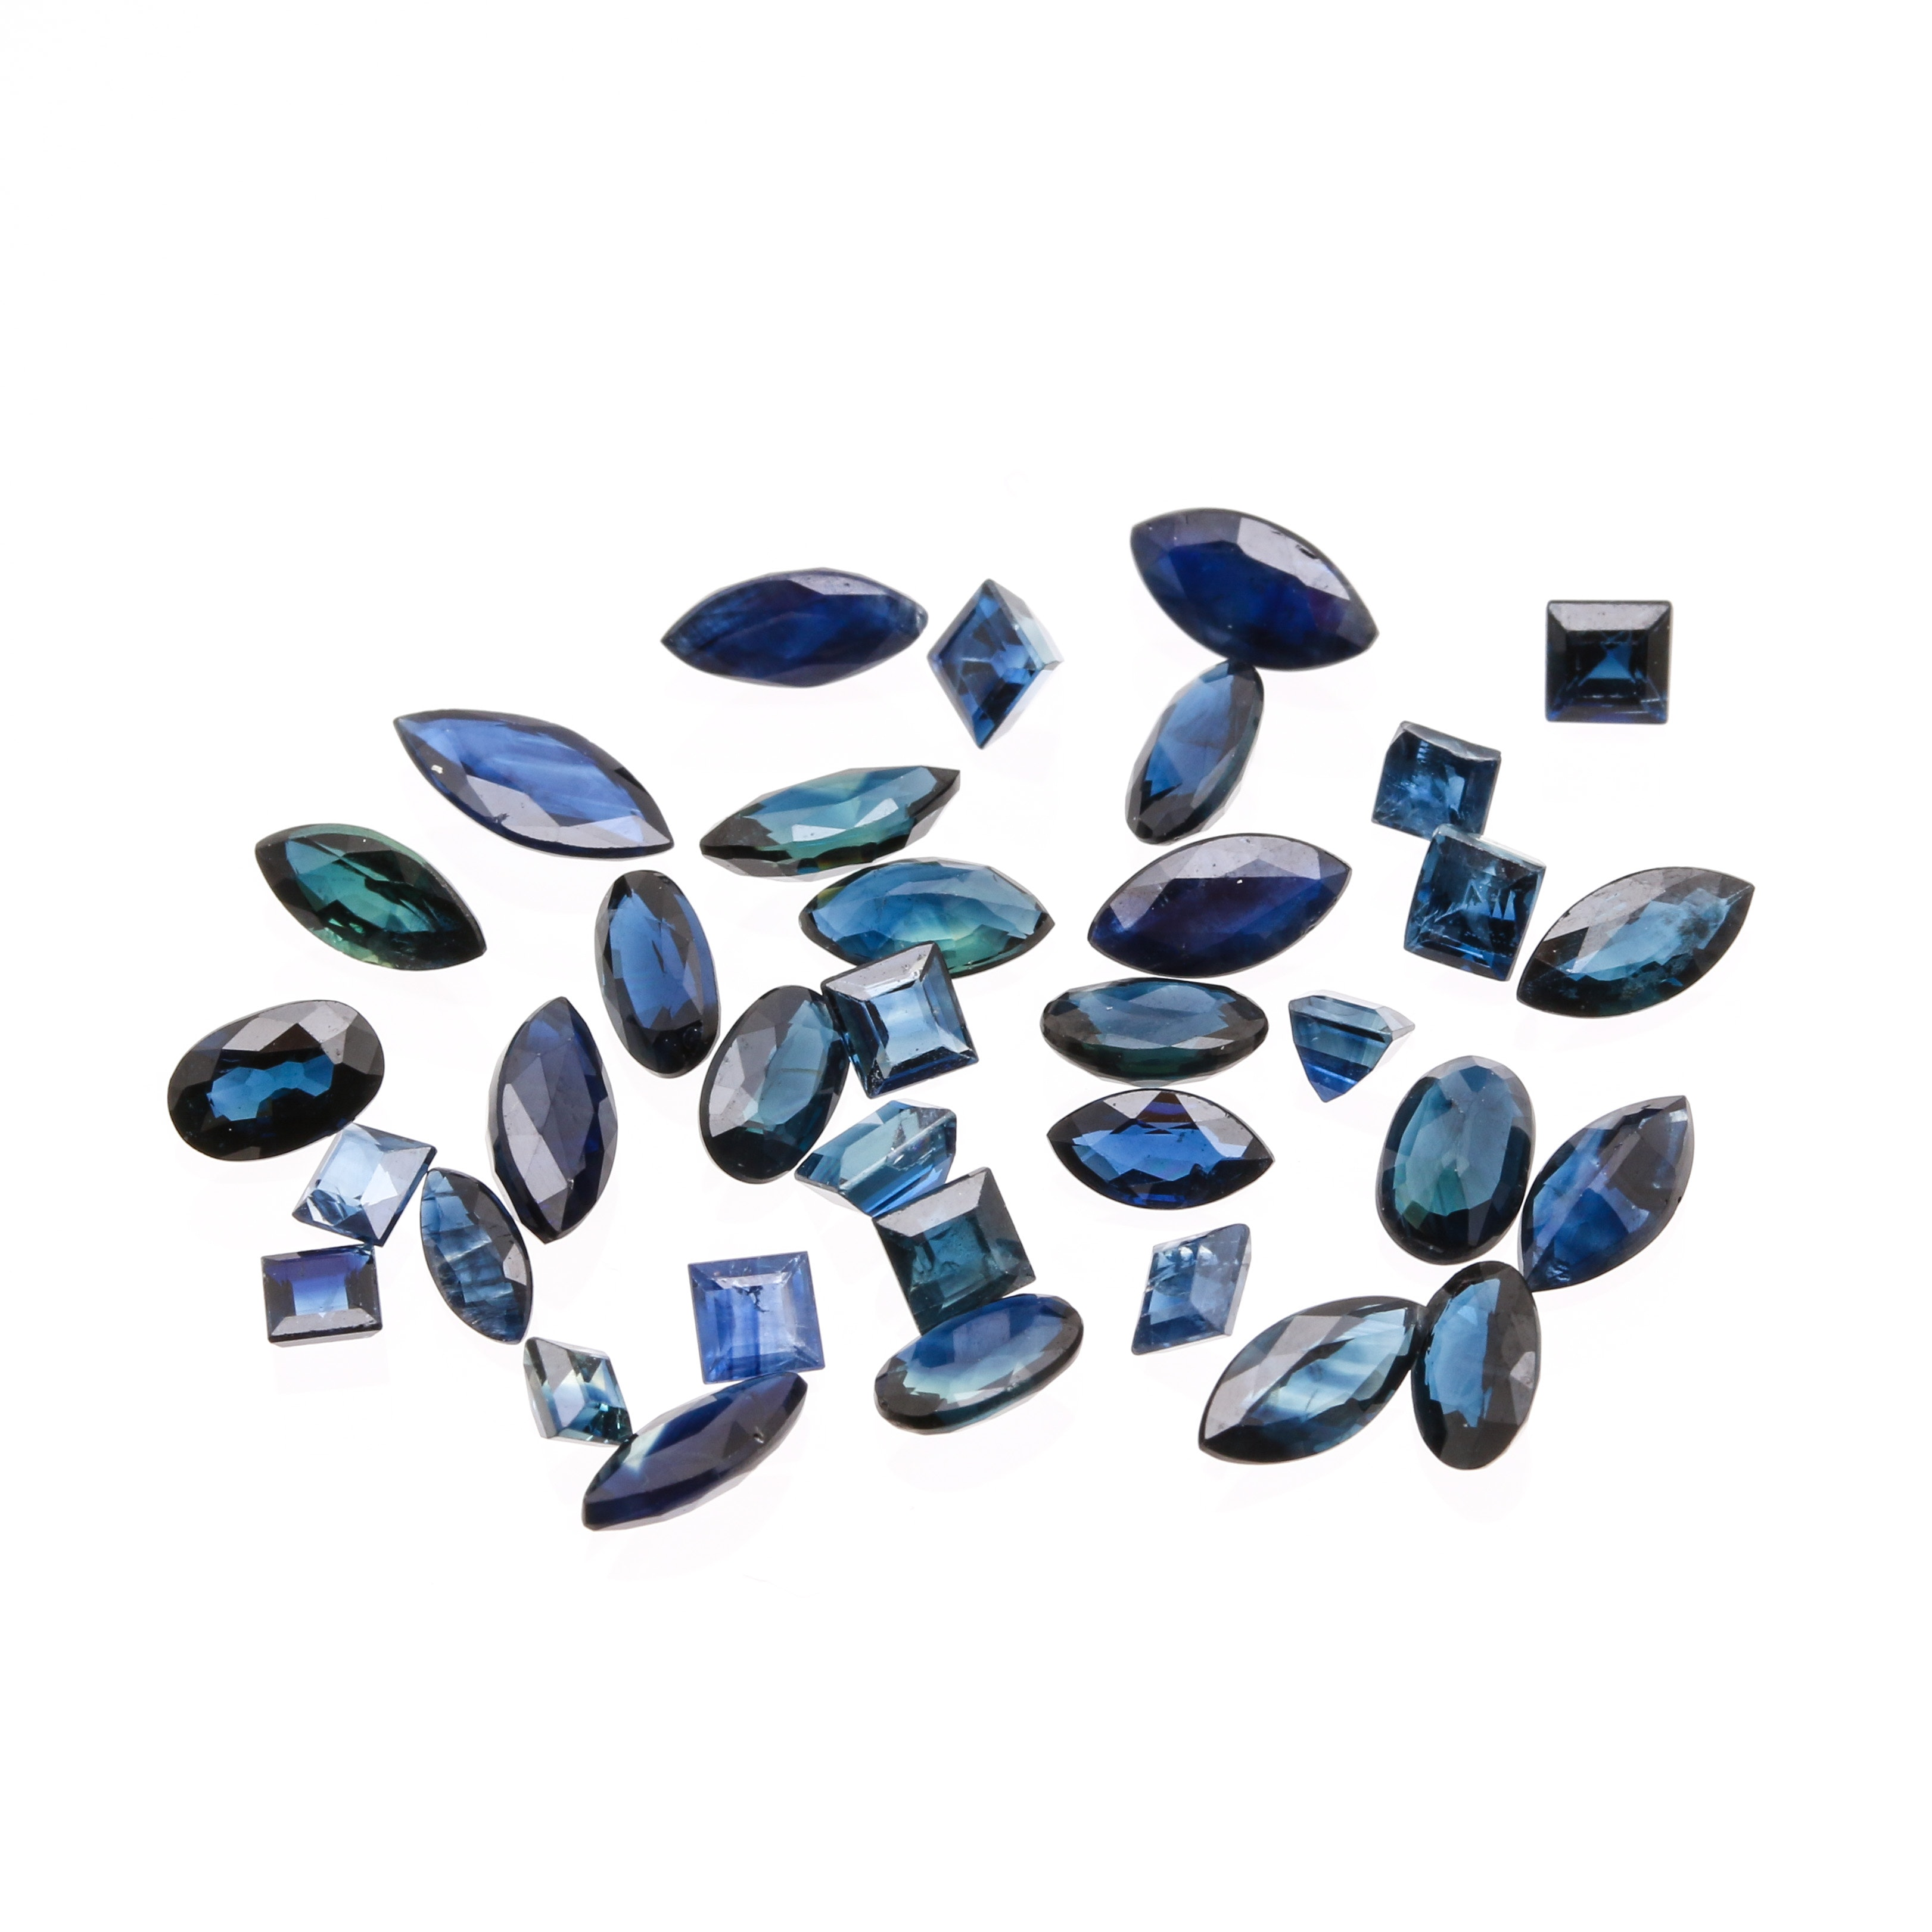 Assortment of 8.50 CTW Blue Sapphire Loose Gemstones